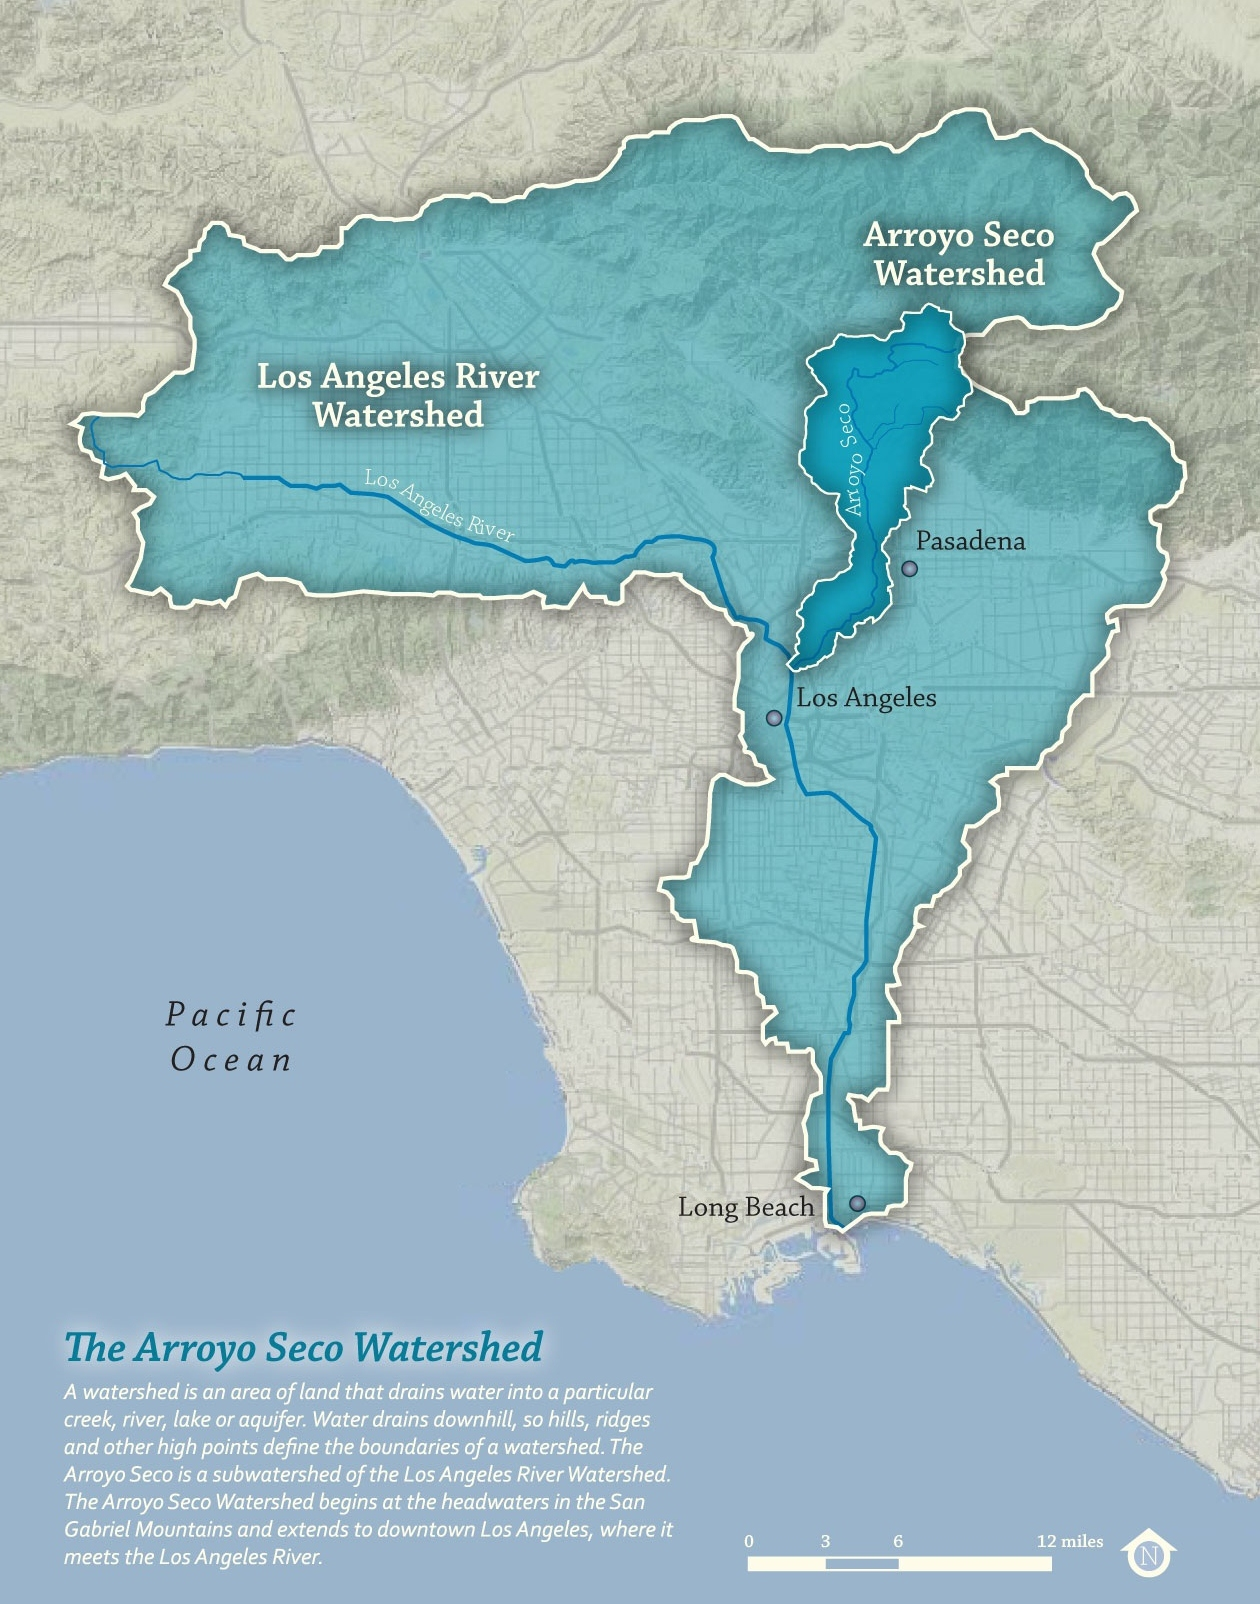 Arroyo Seco Subwatershed Within L.A. River Watershed